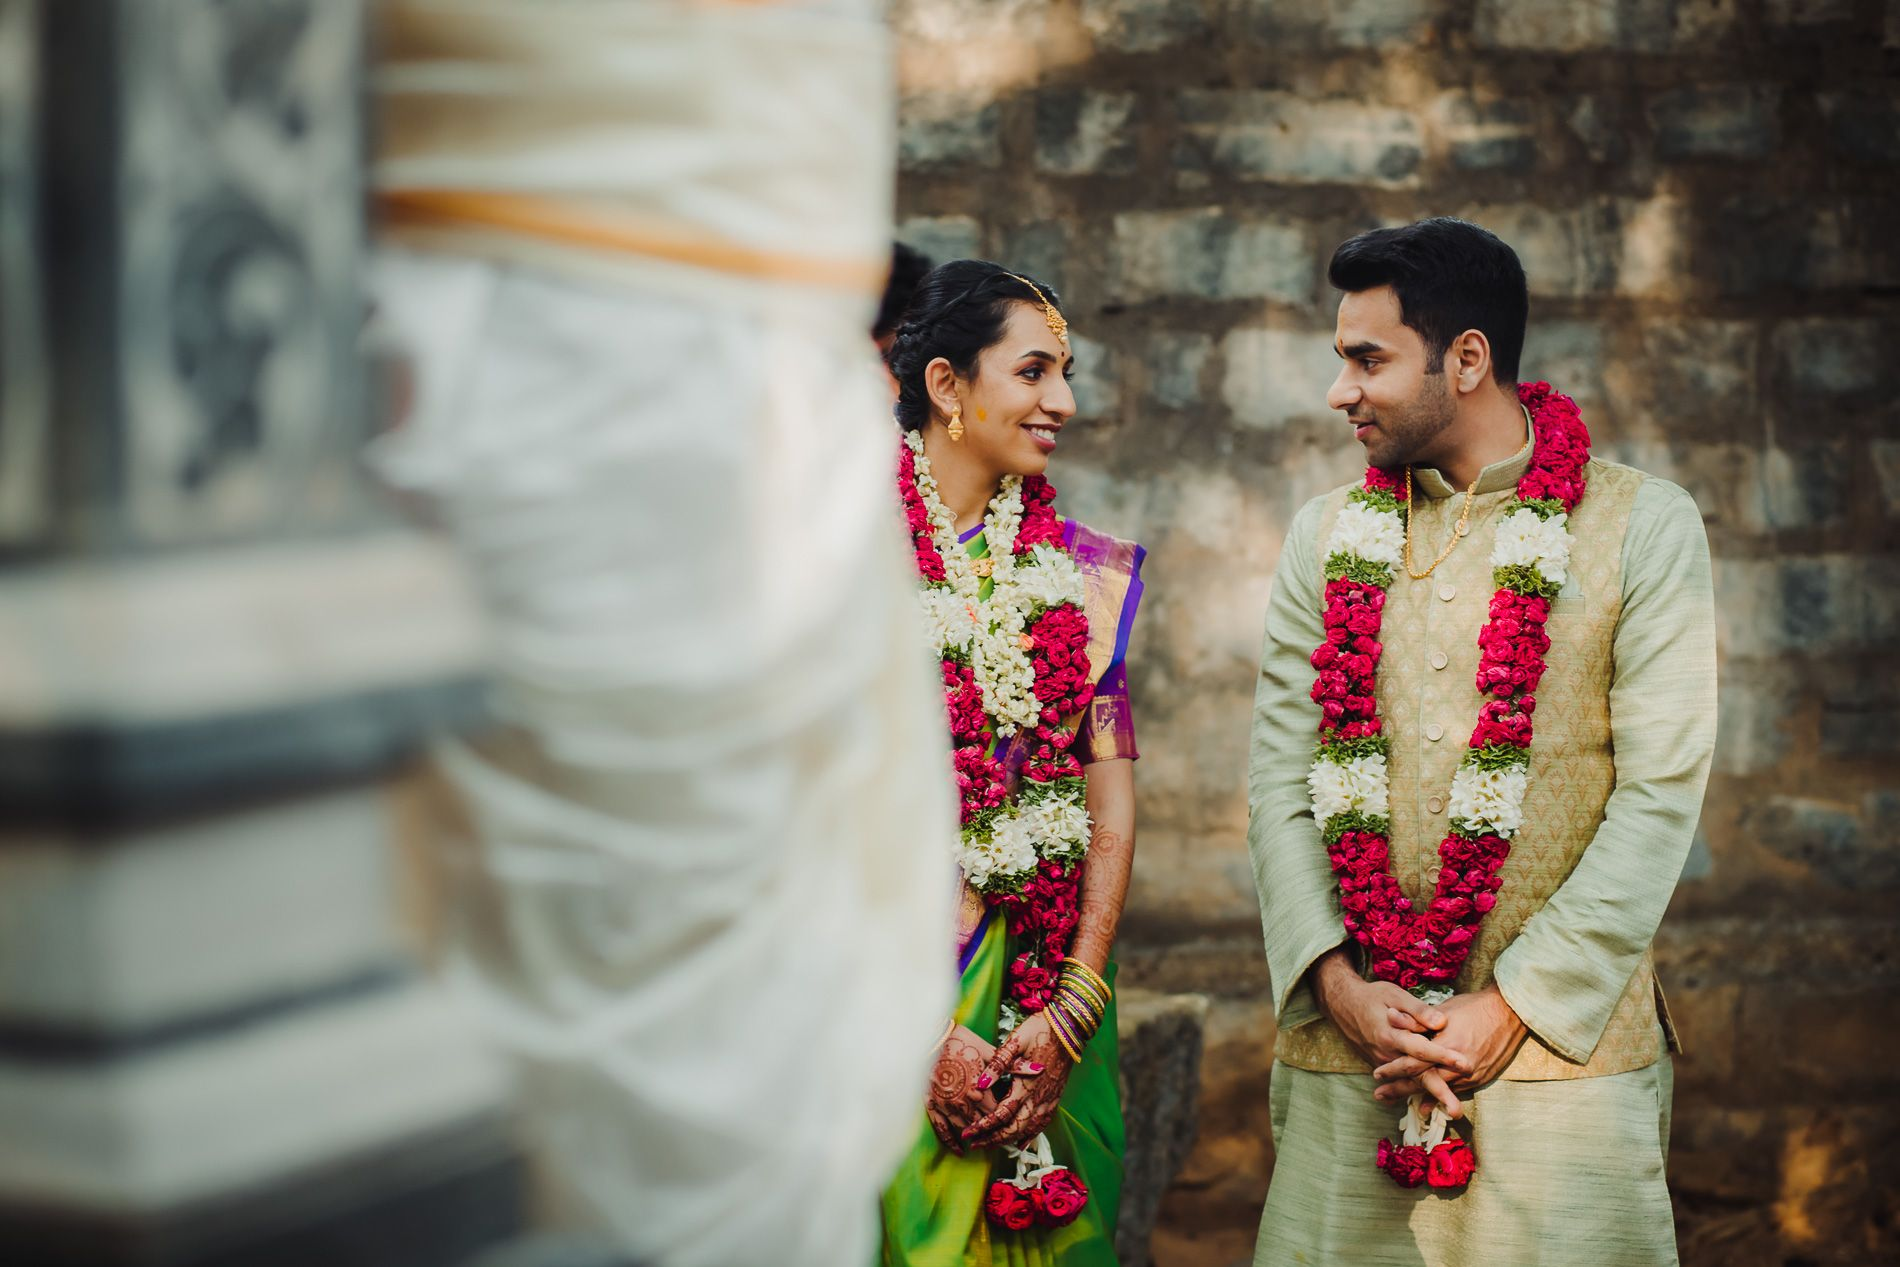 Candid wedding photography is capturing those moments when the couple thinks no one is looking at them! #vivekkrishnanphotography #couplephotography #weddingphotography #weddingdiaries  #candidshots